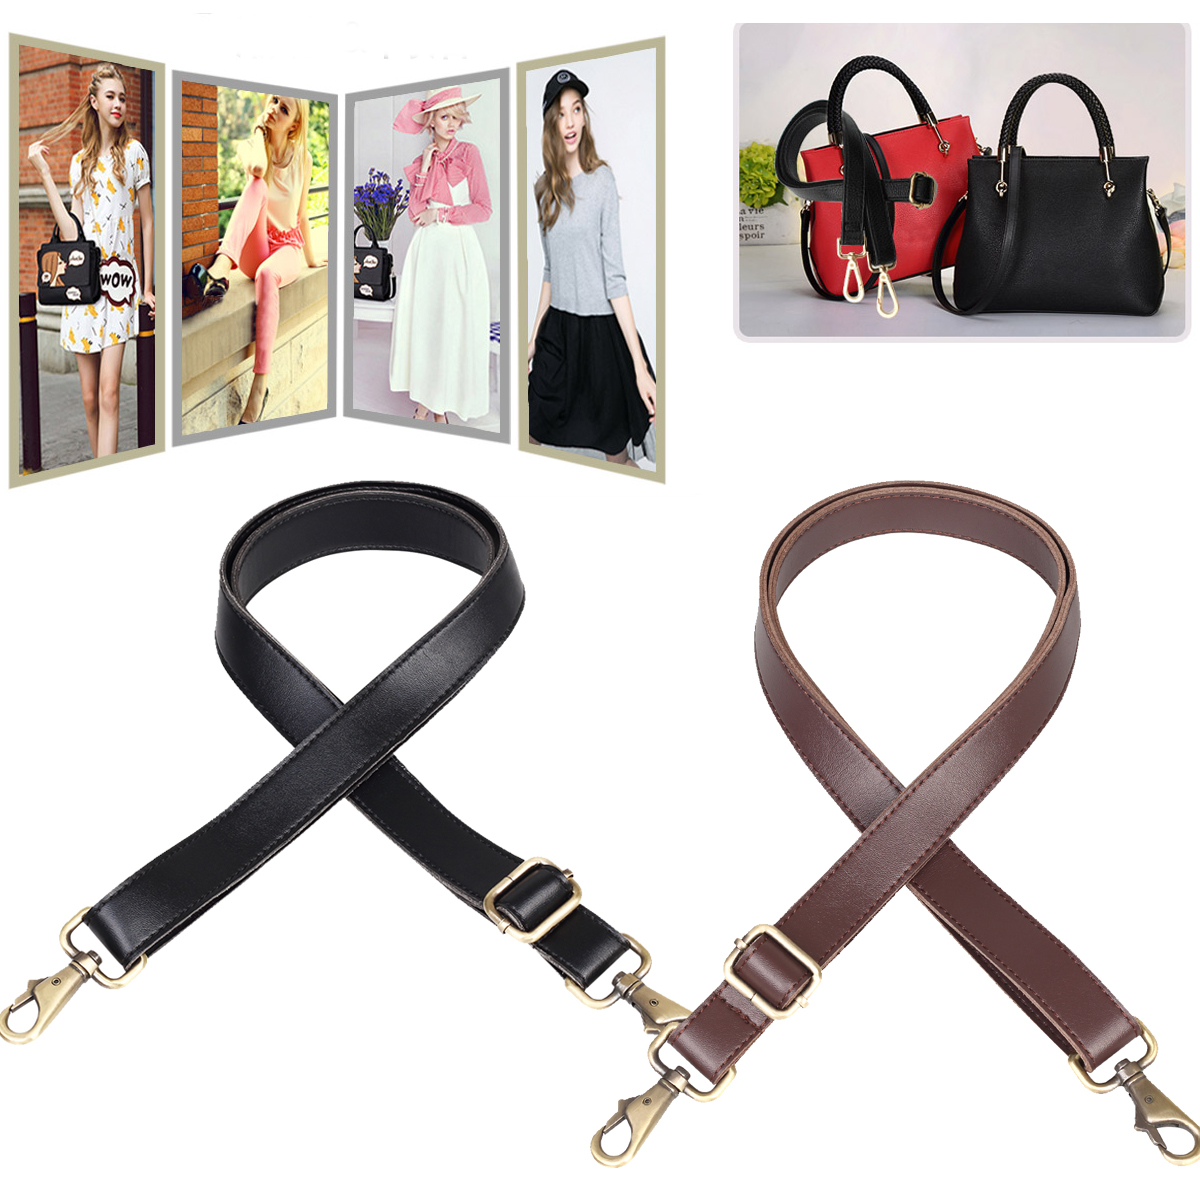 1c6f2e4507 140cm Universal Replacement Adjustable Leather Shoulder Strap with metal  Swivel hooks for leather Crossbody Bag Briefcase